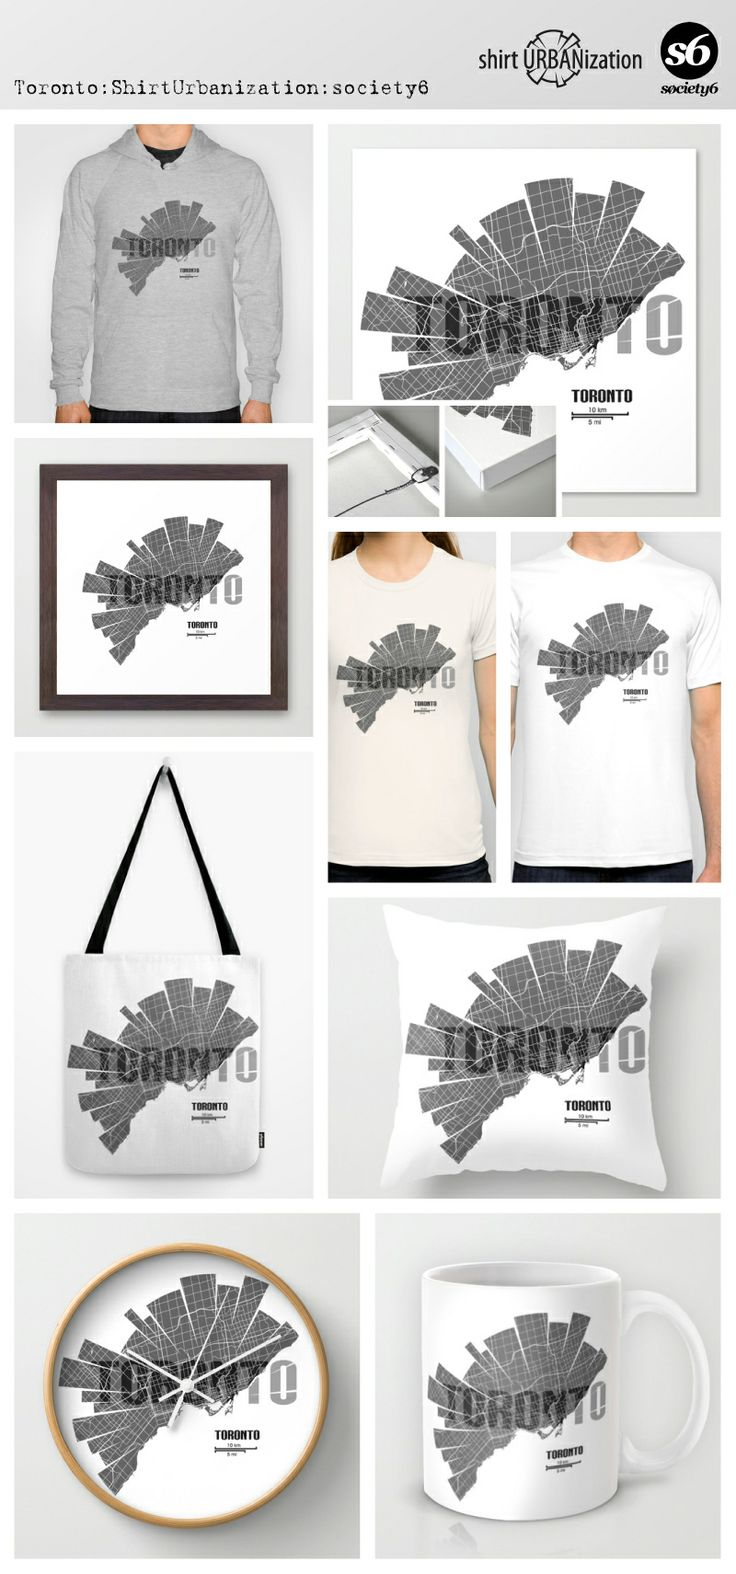 Stylistic city map of Toronto in black and white on light background. Available at Society6 on a variety of products. http://society6.com/ShirtUrbanization/Toronto-Map_Print